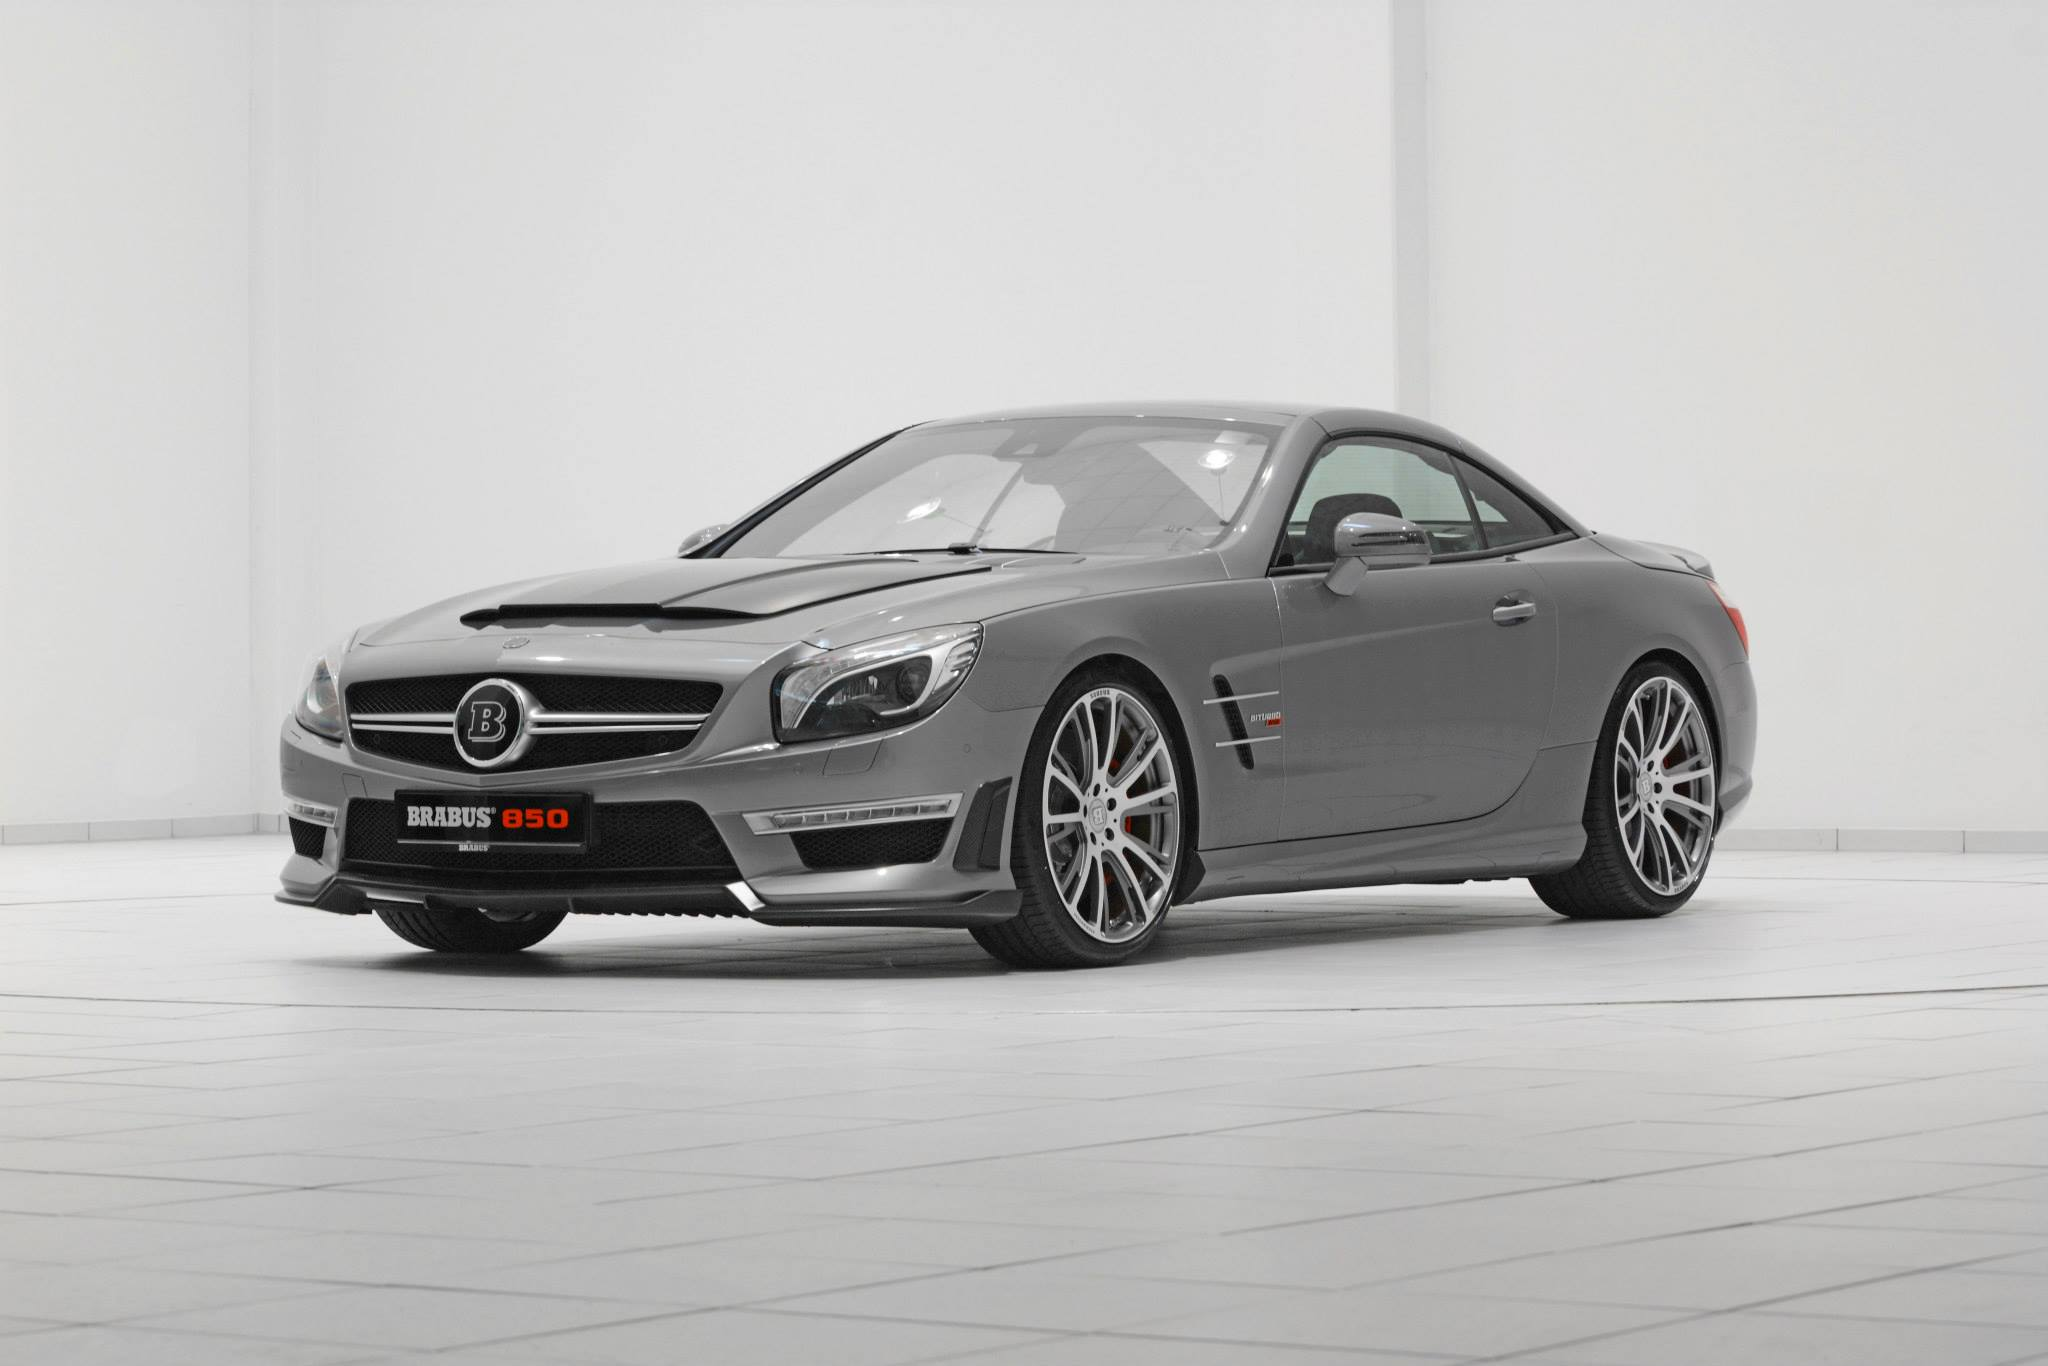 Brabus 850 Mercedes Benz Sl63 Amg 850hp And 1450nm